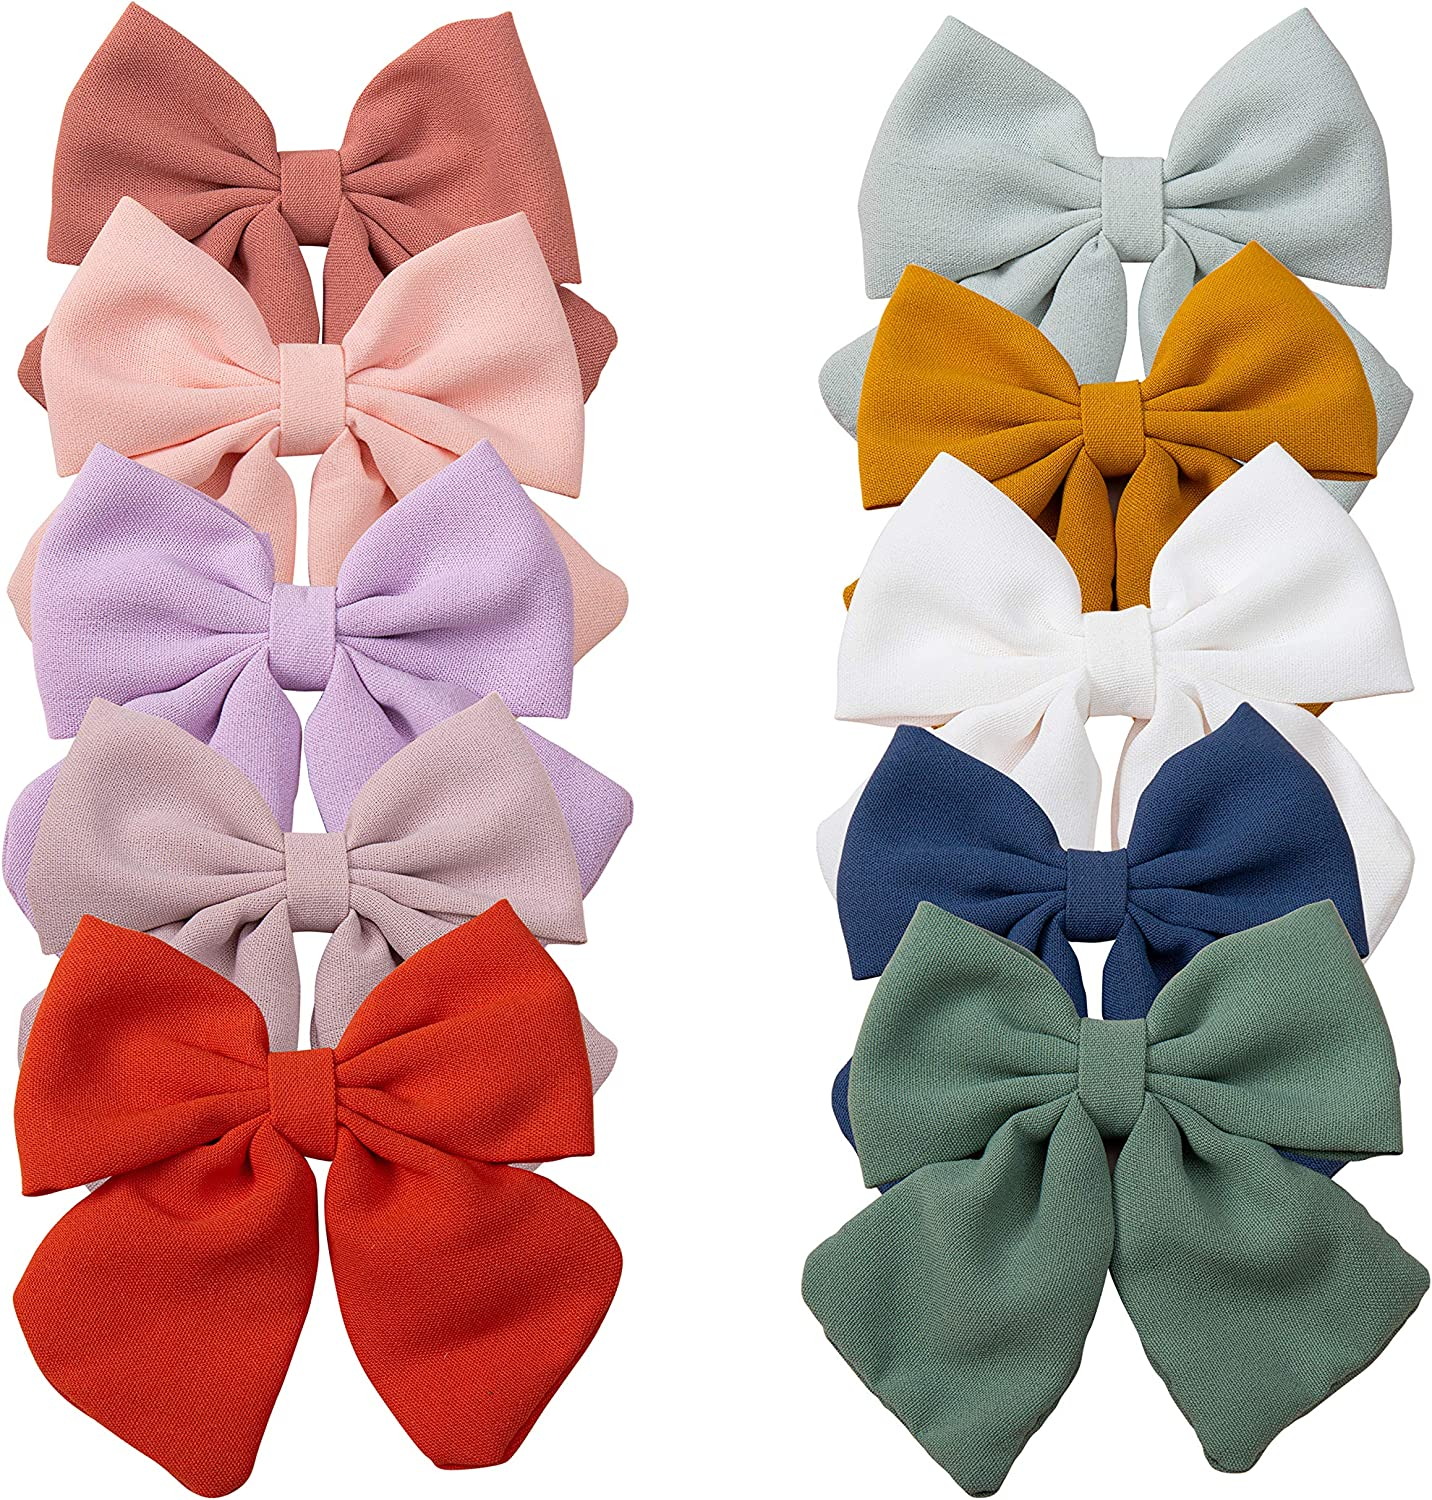 Baby Hair Max 69% OFF Clips with Ho Barrettes Alligator Bows discount